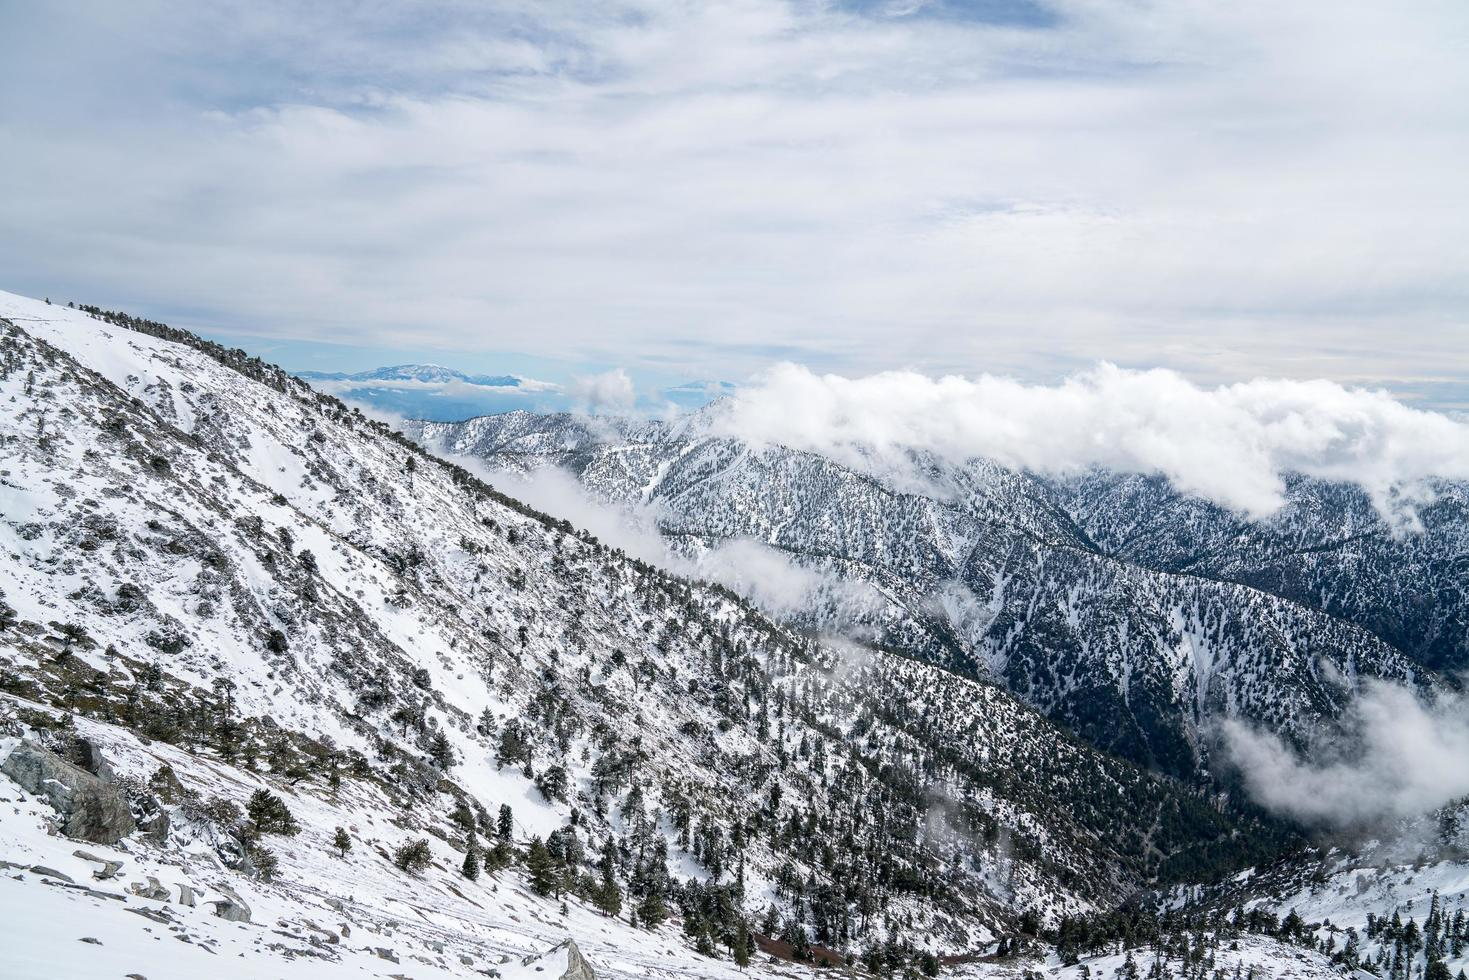 Mt. Baldy Bowl covered in snow in California photo